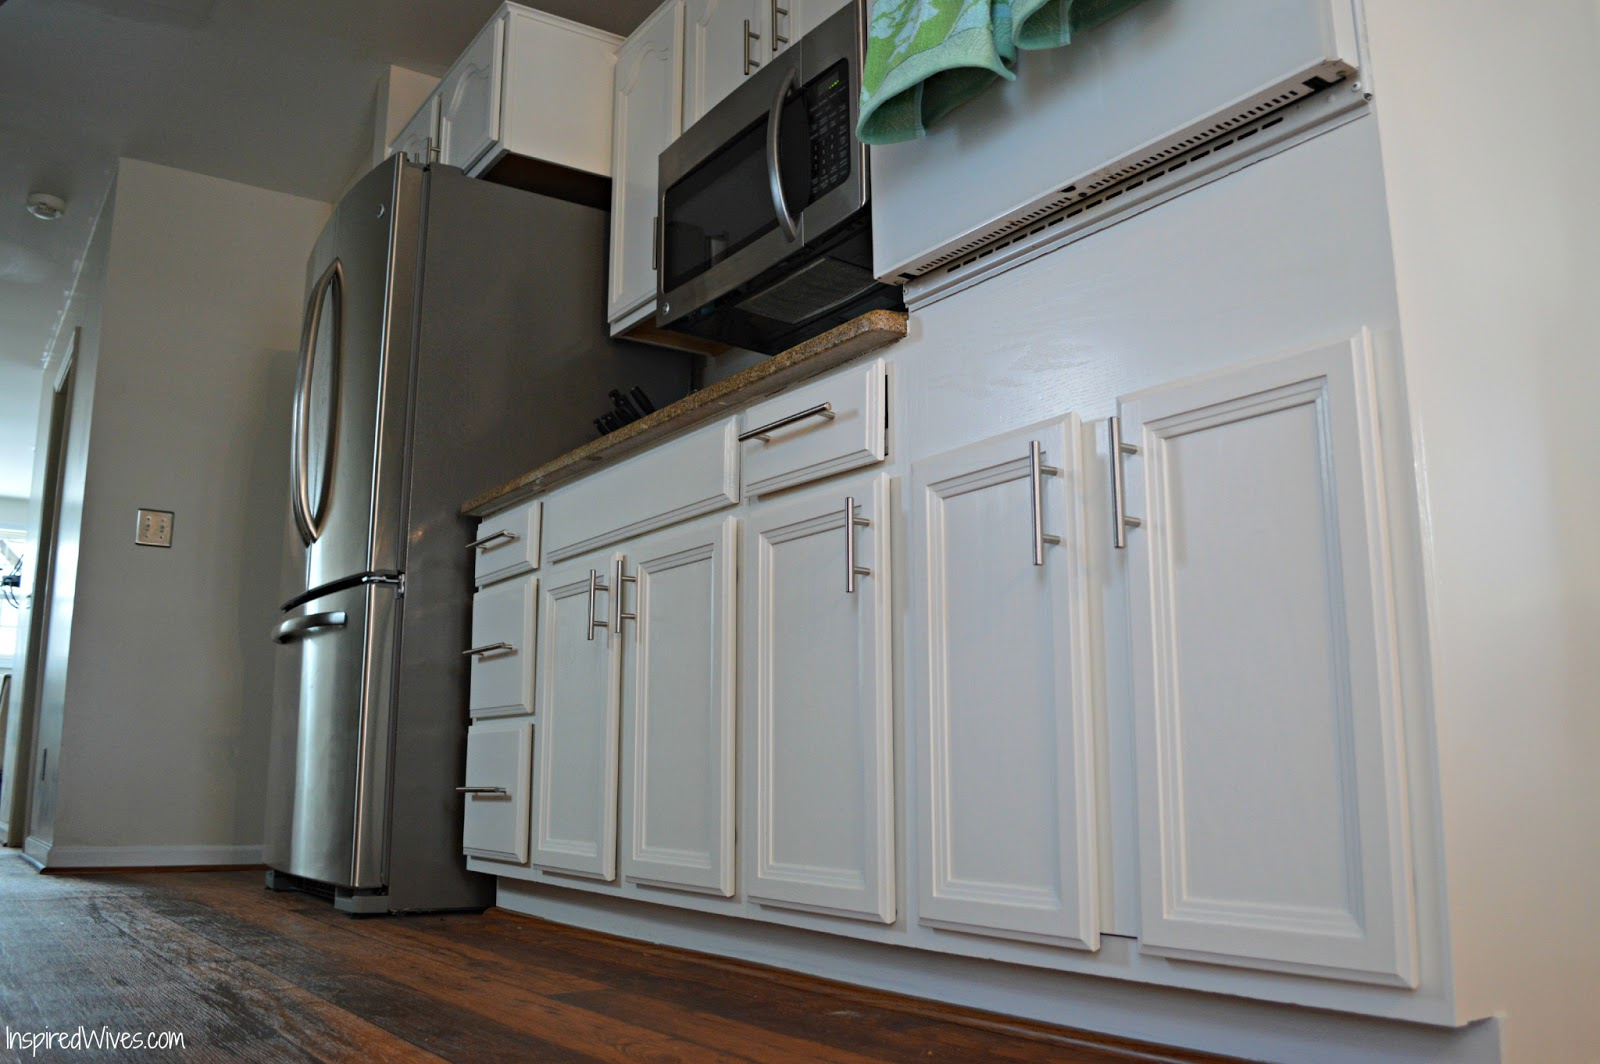 How To Paint Kitchen Cabinet Frames